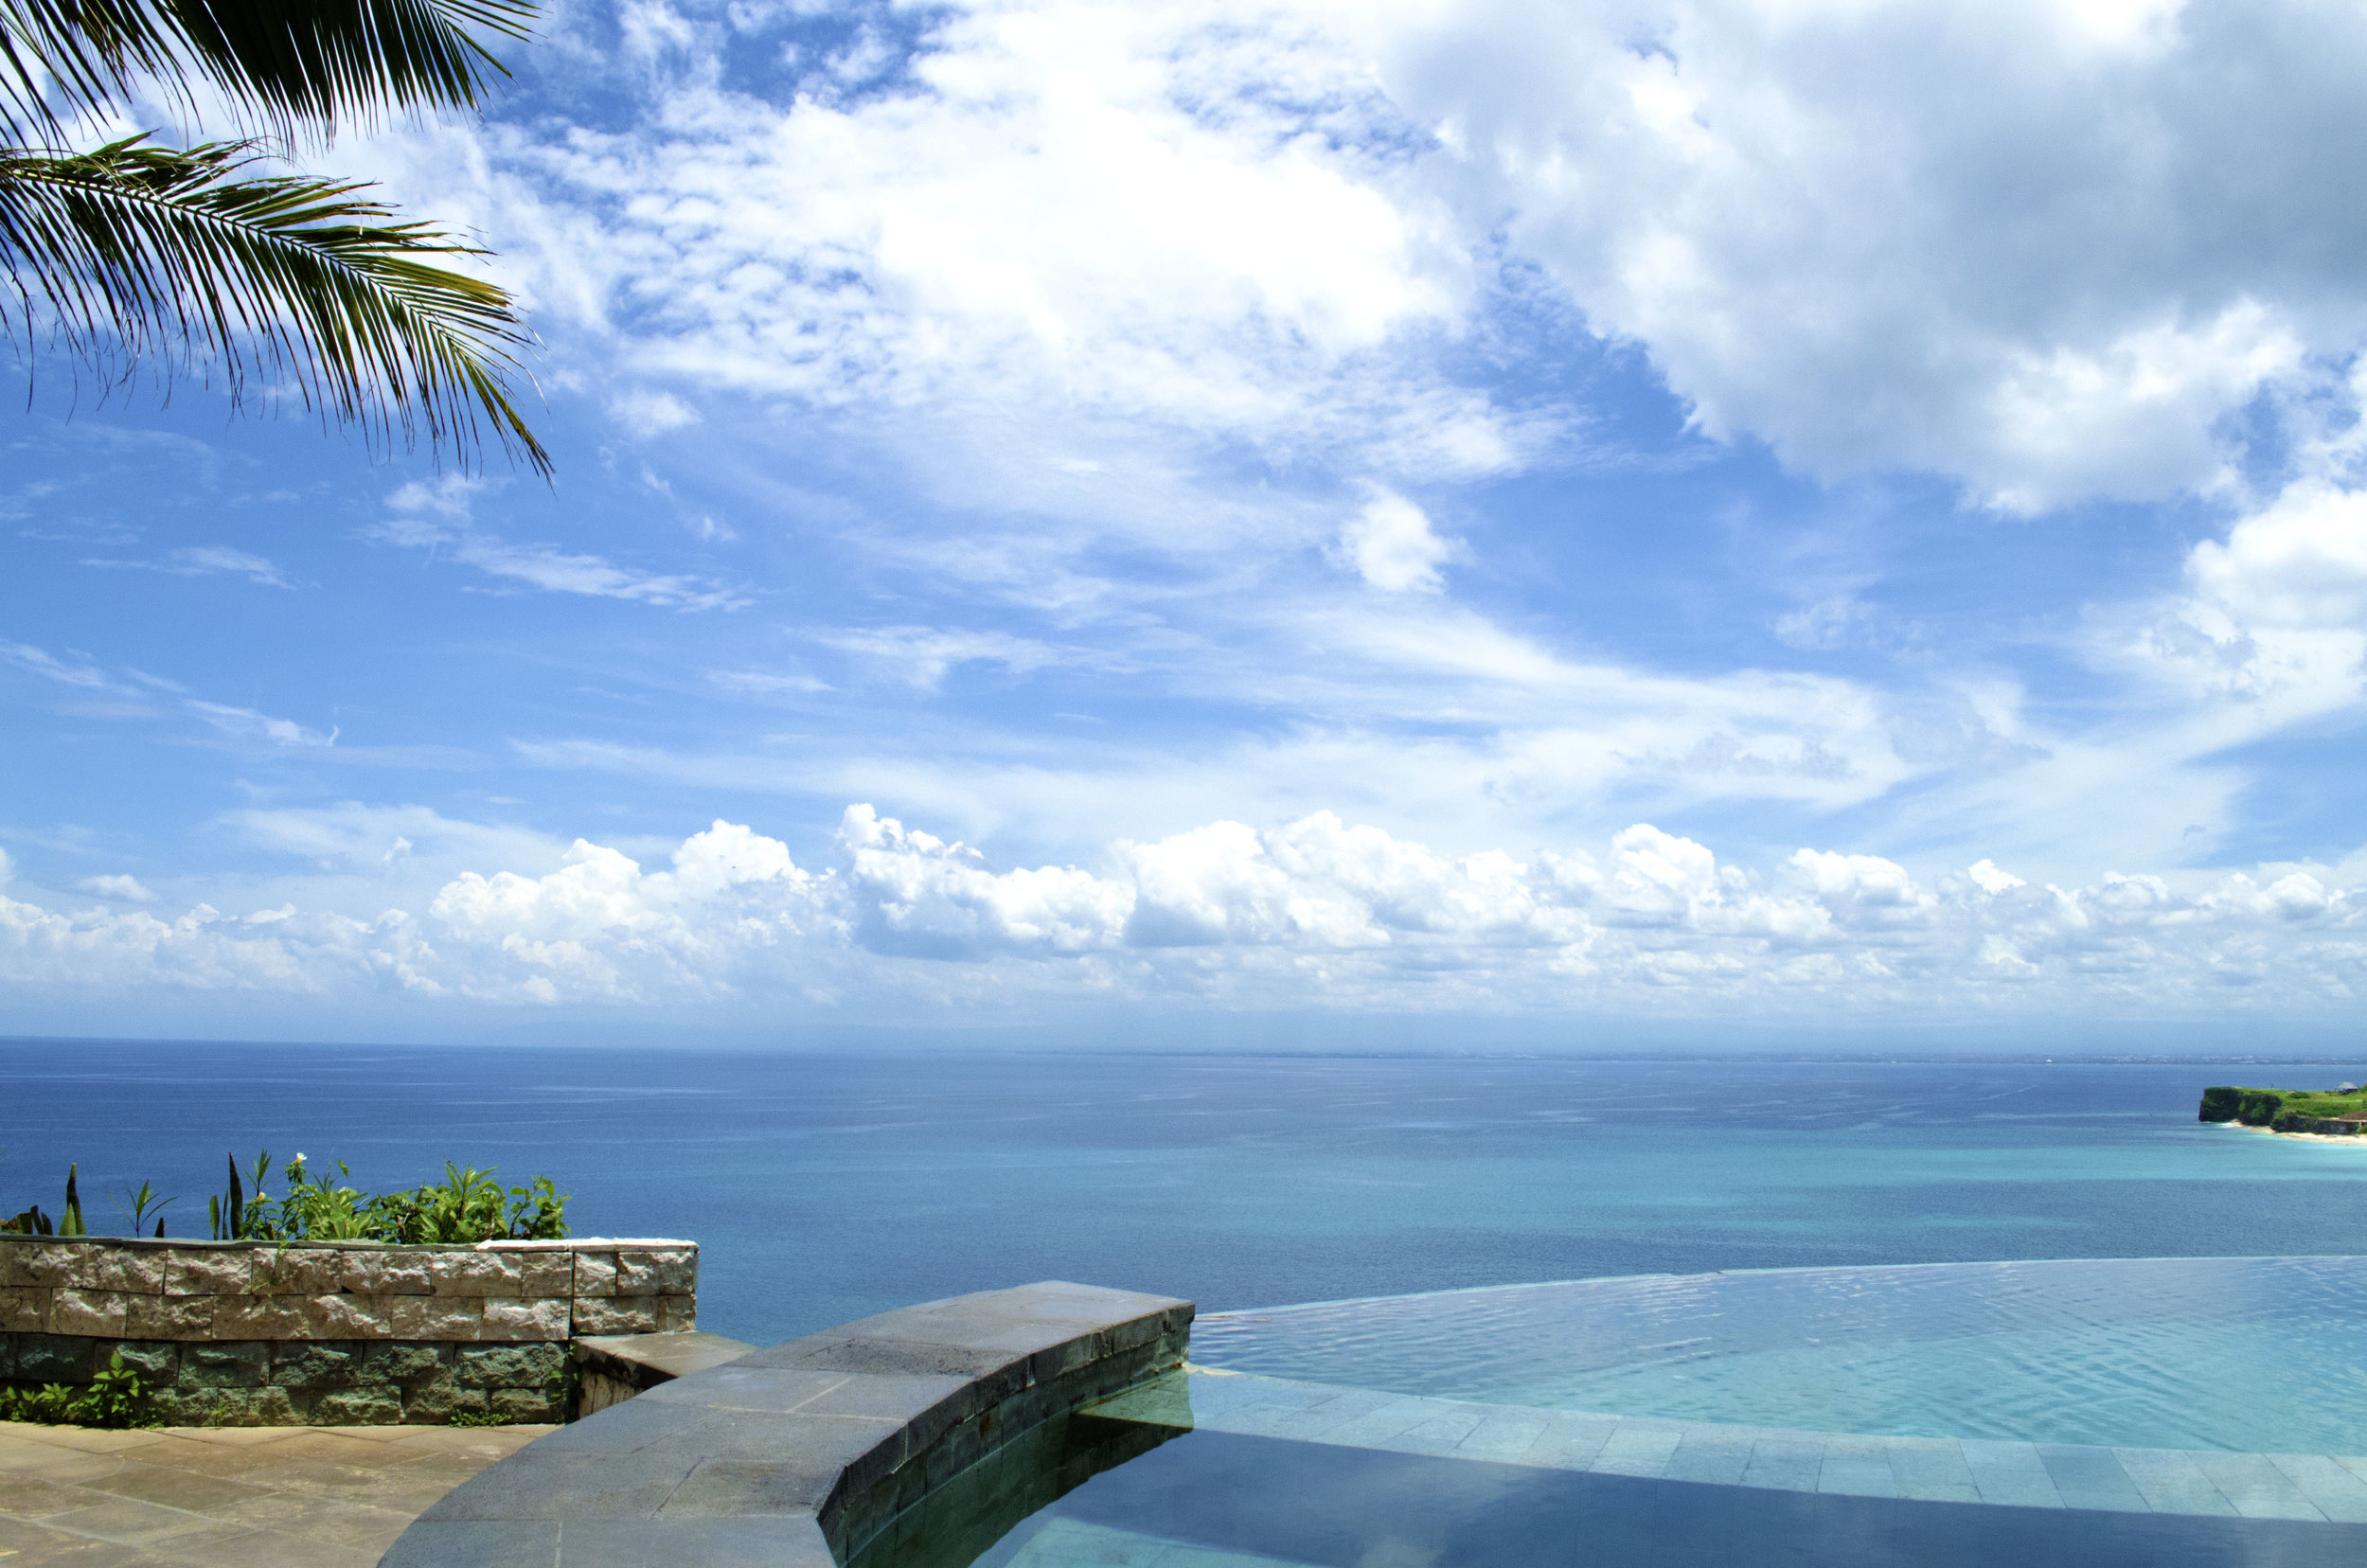 View from my favorite infinity pool in Bali (not pictured the feisty monkeys that tried to steal our belongings)